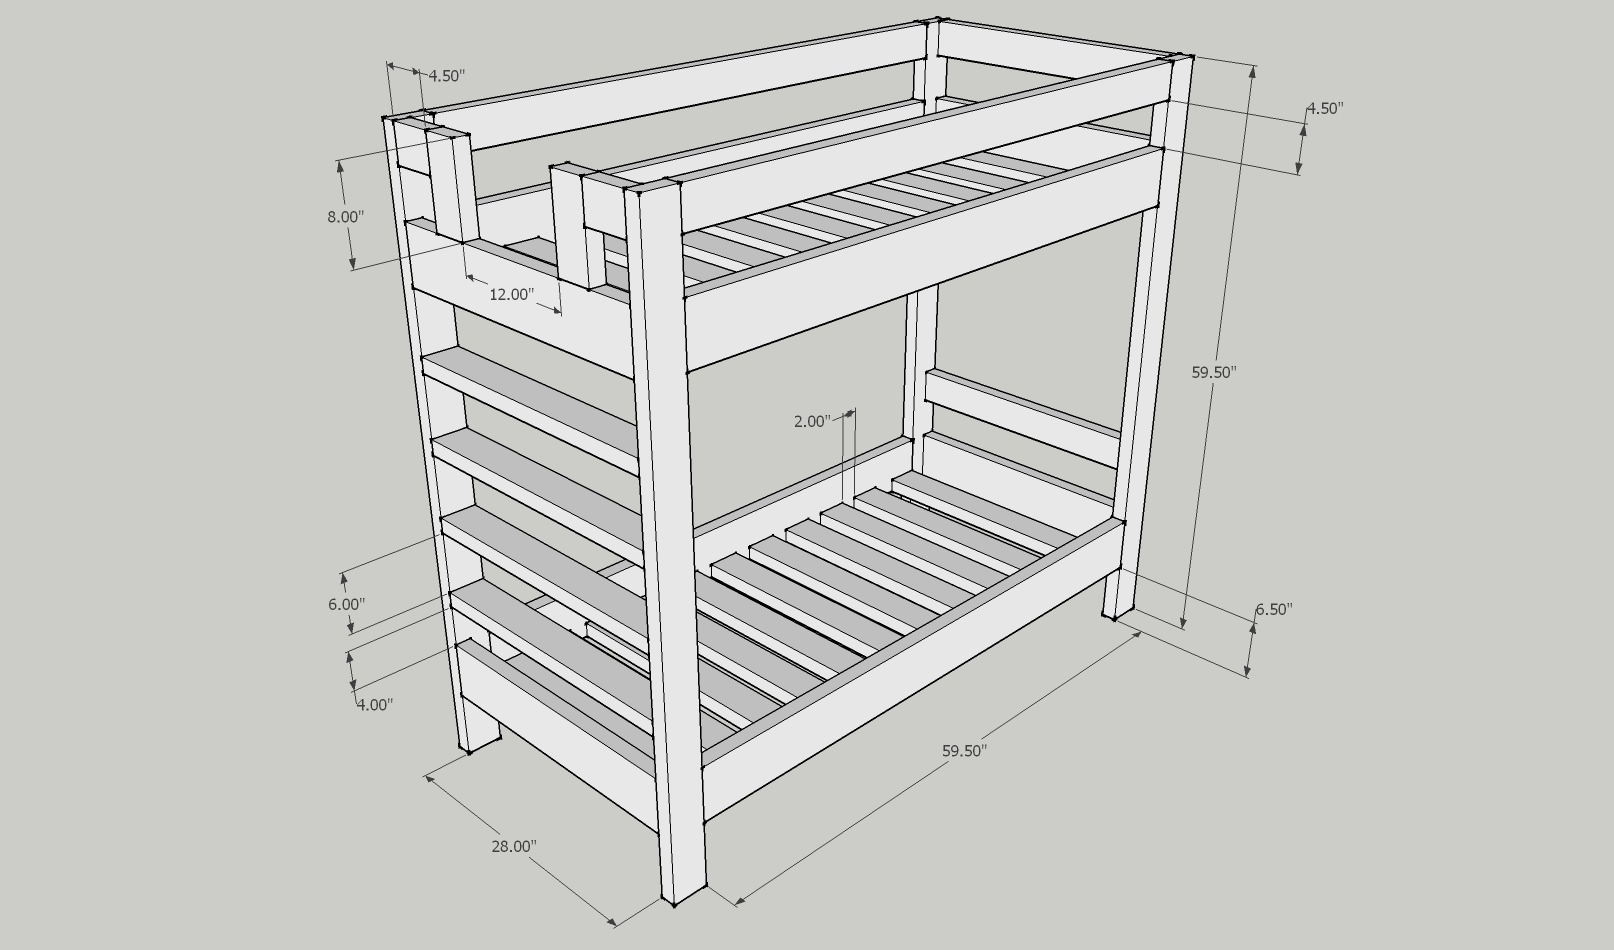 patterns couch diy bunk bed guide beds with plans